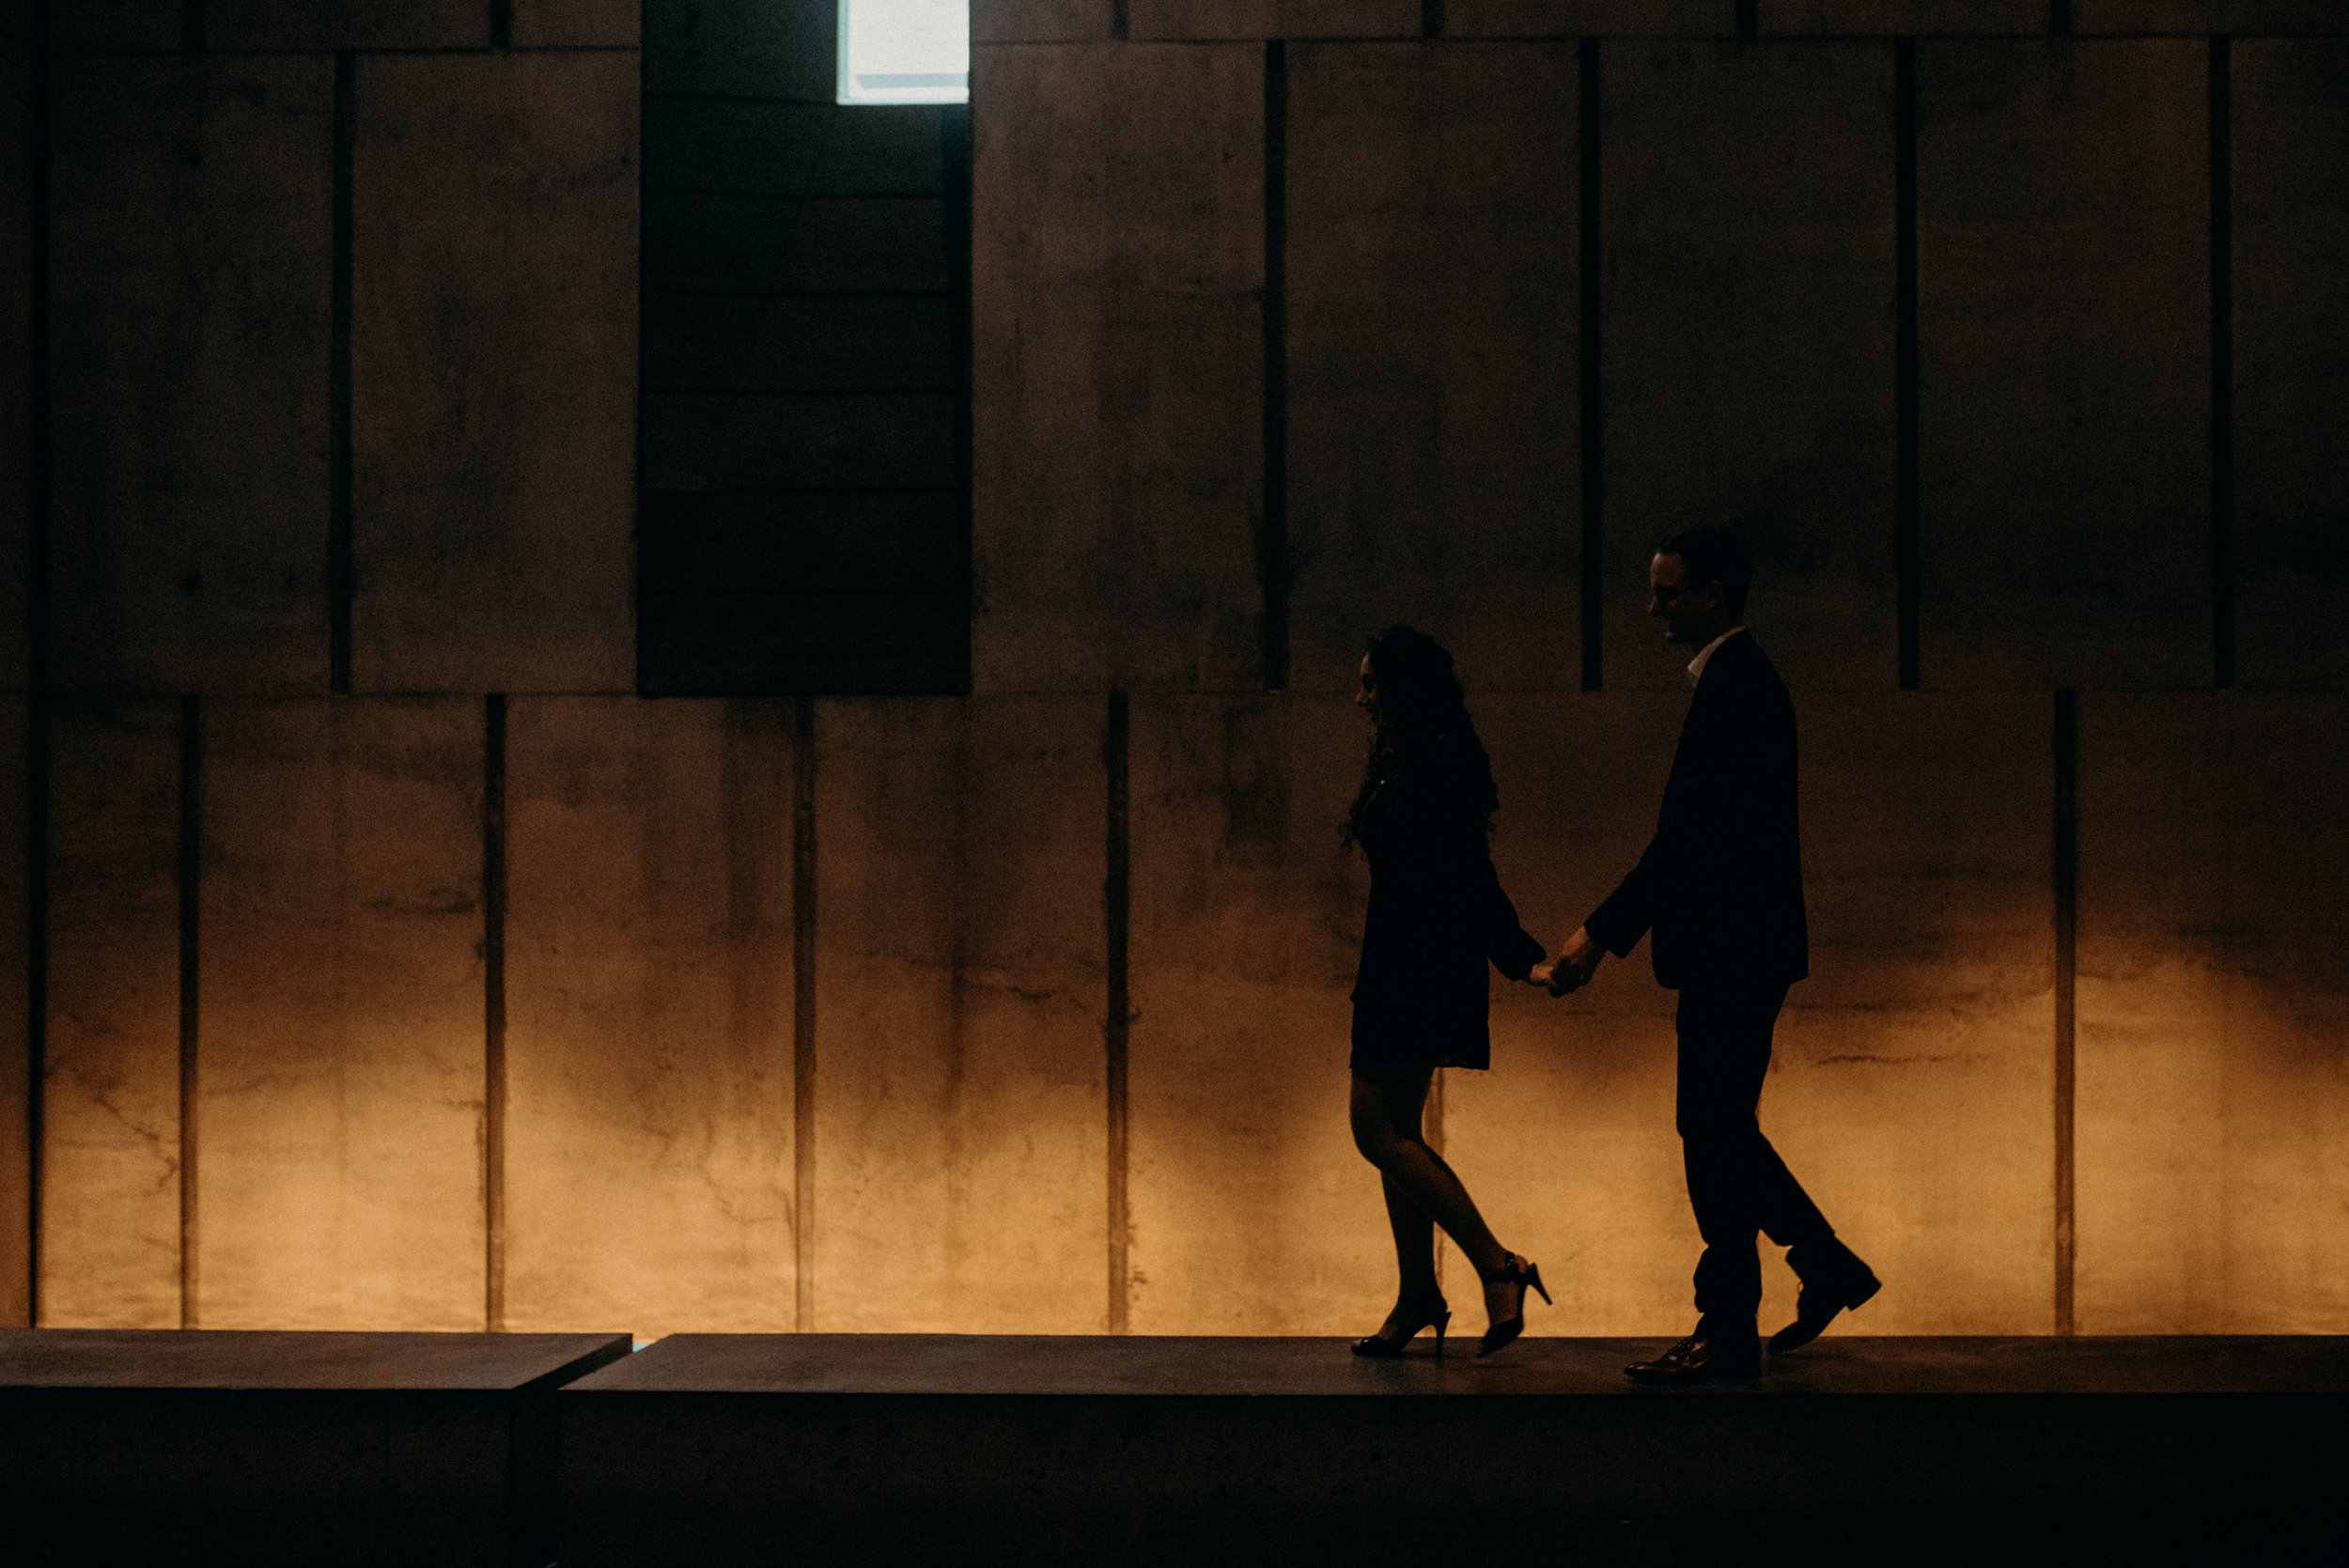 War Museum Engagement Picture Mocha Tree Studios Ottawa Toronto Montreal Wedding and Engagement Photographer and Videographer Dark Moody Intimate Authentic Modern Romantic Cinematic Best Candid 8